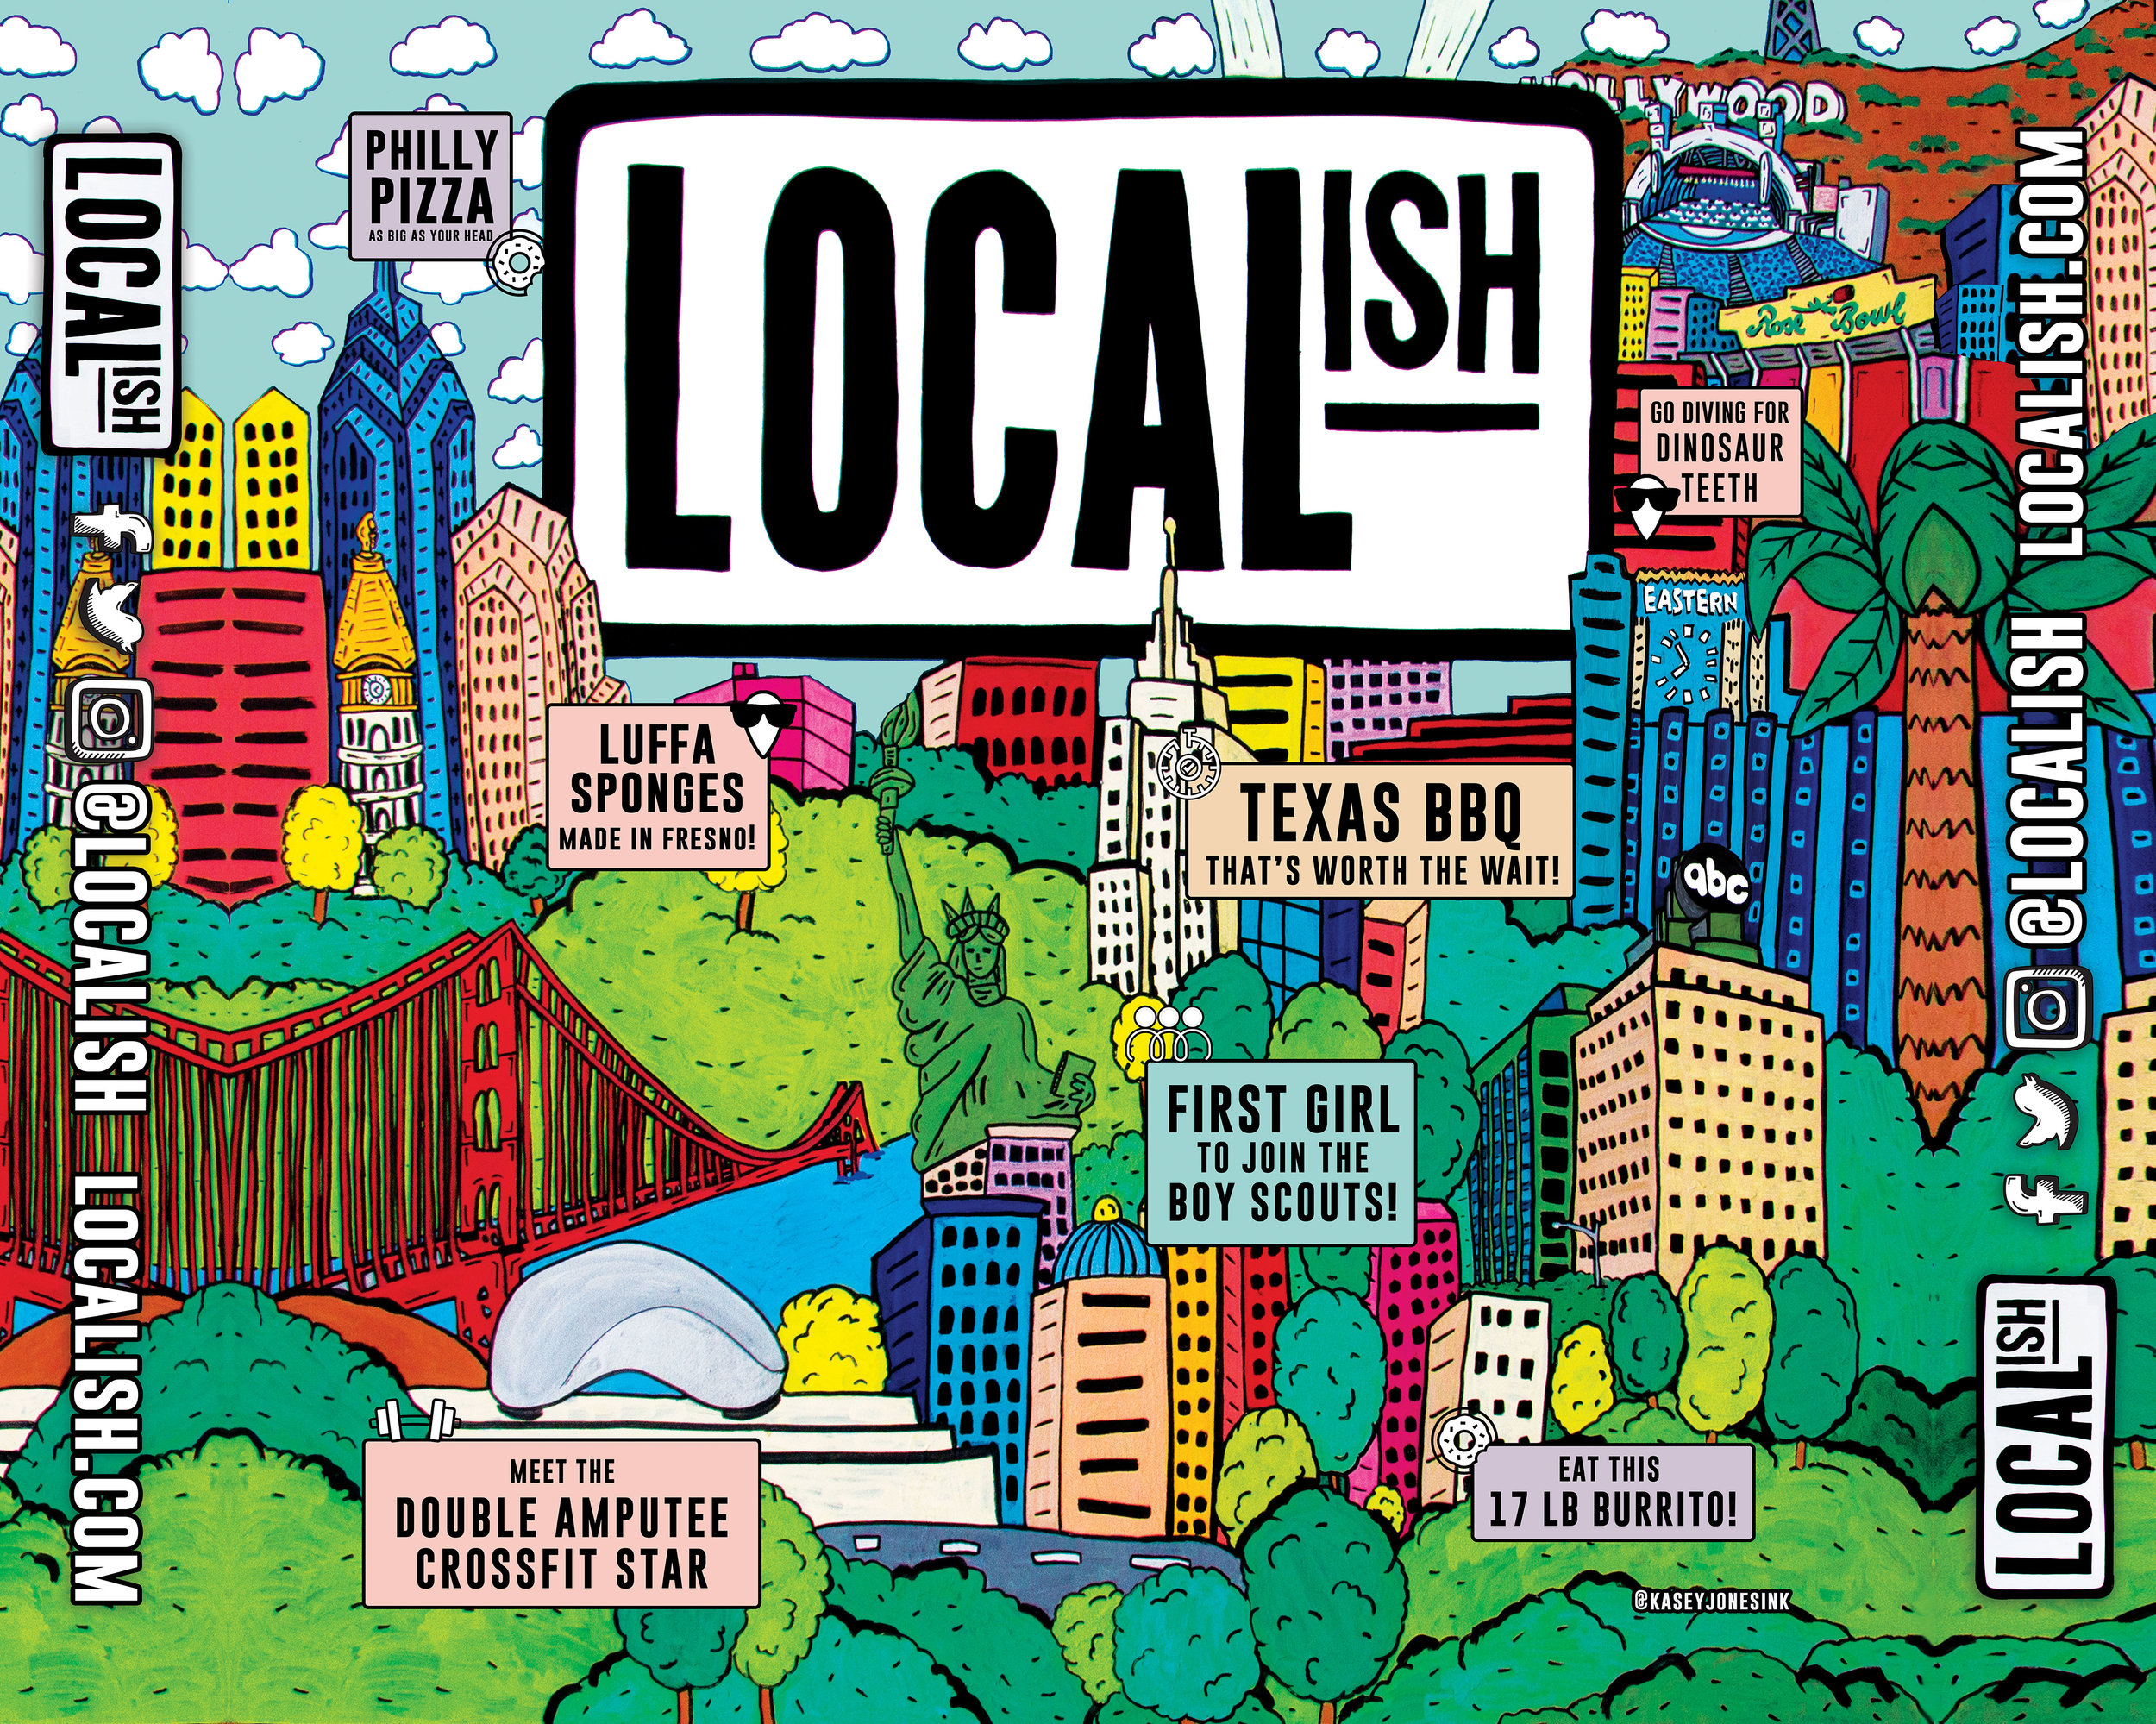 Localish-Backdrop-WithEndcaps-3-preview.jpg